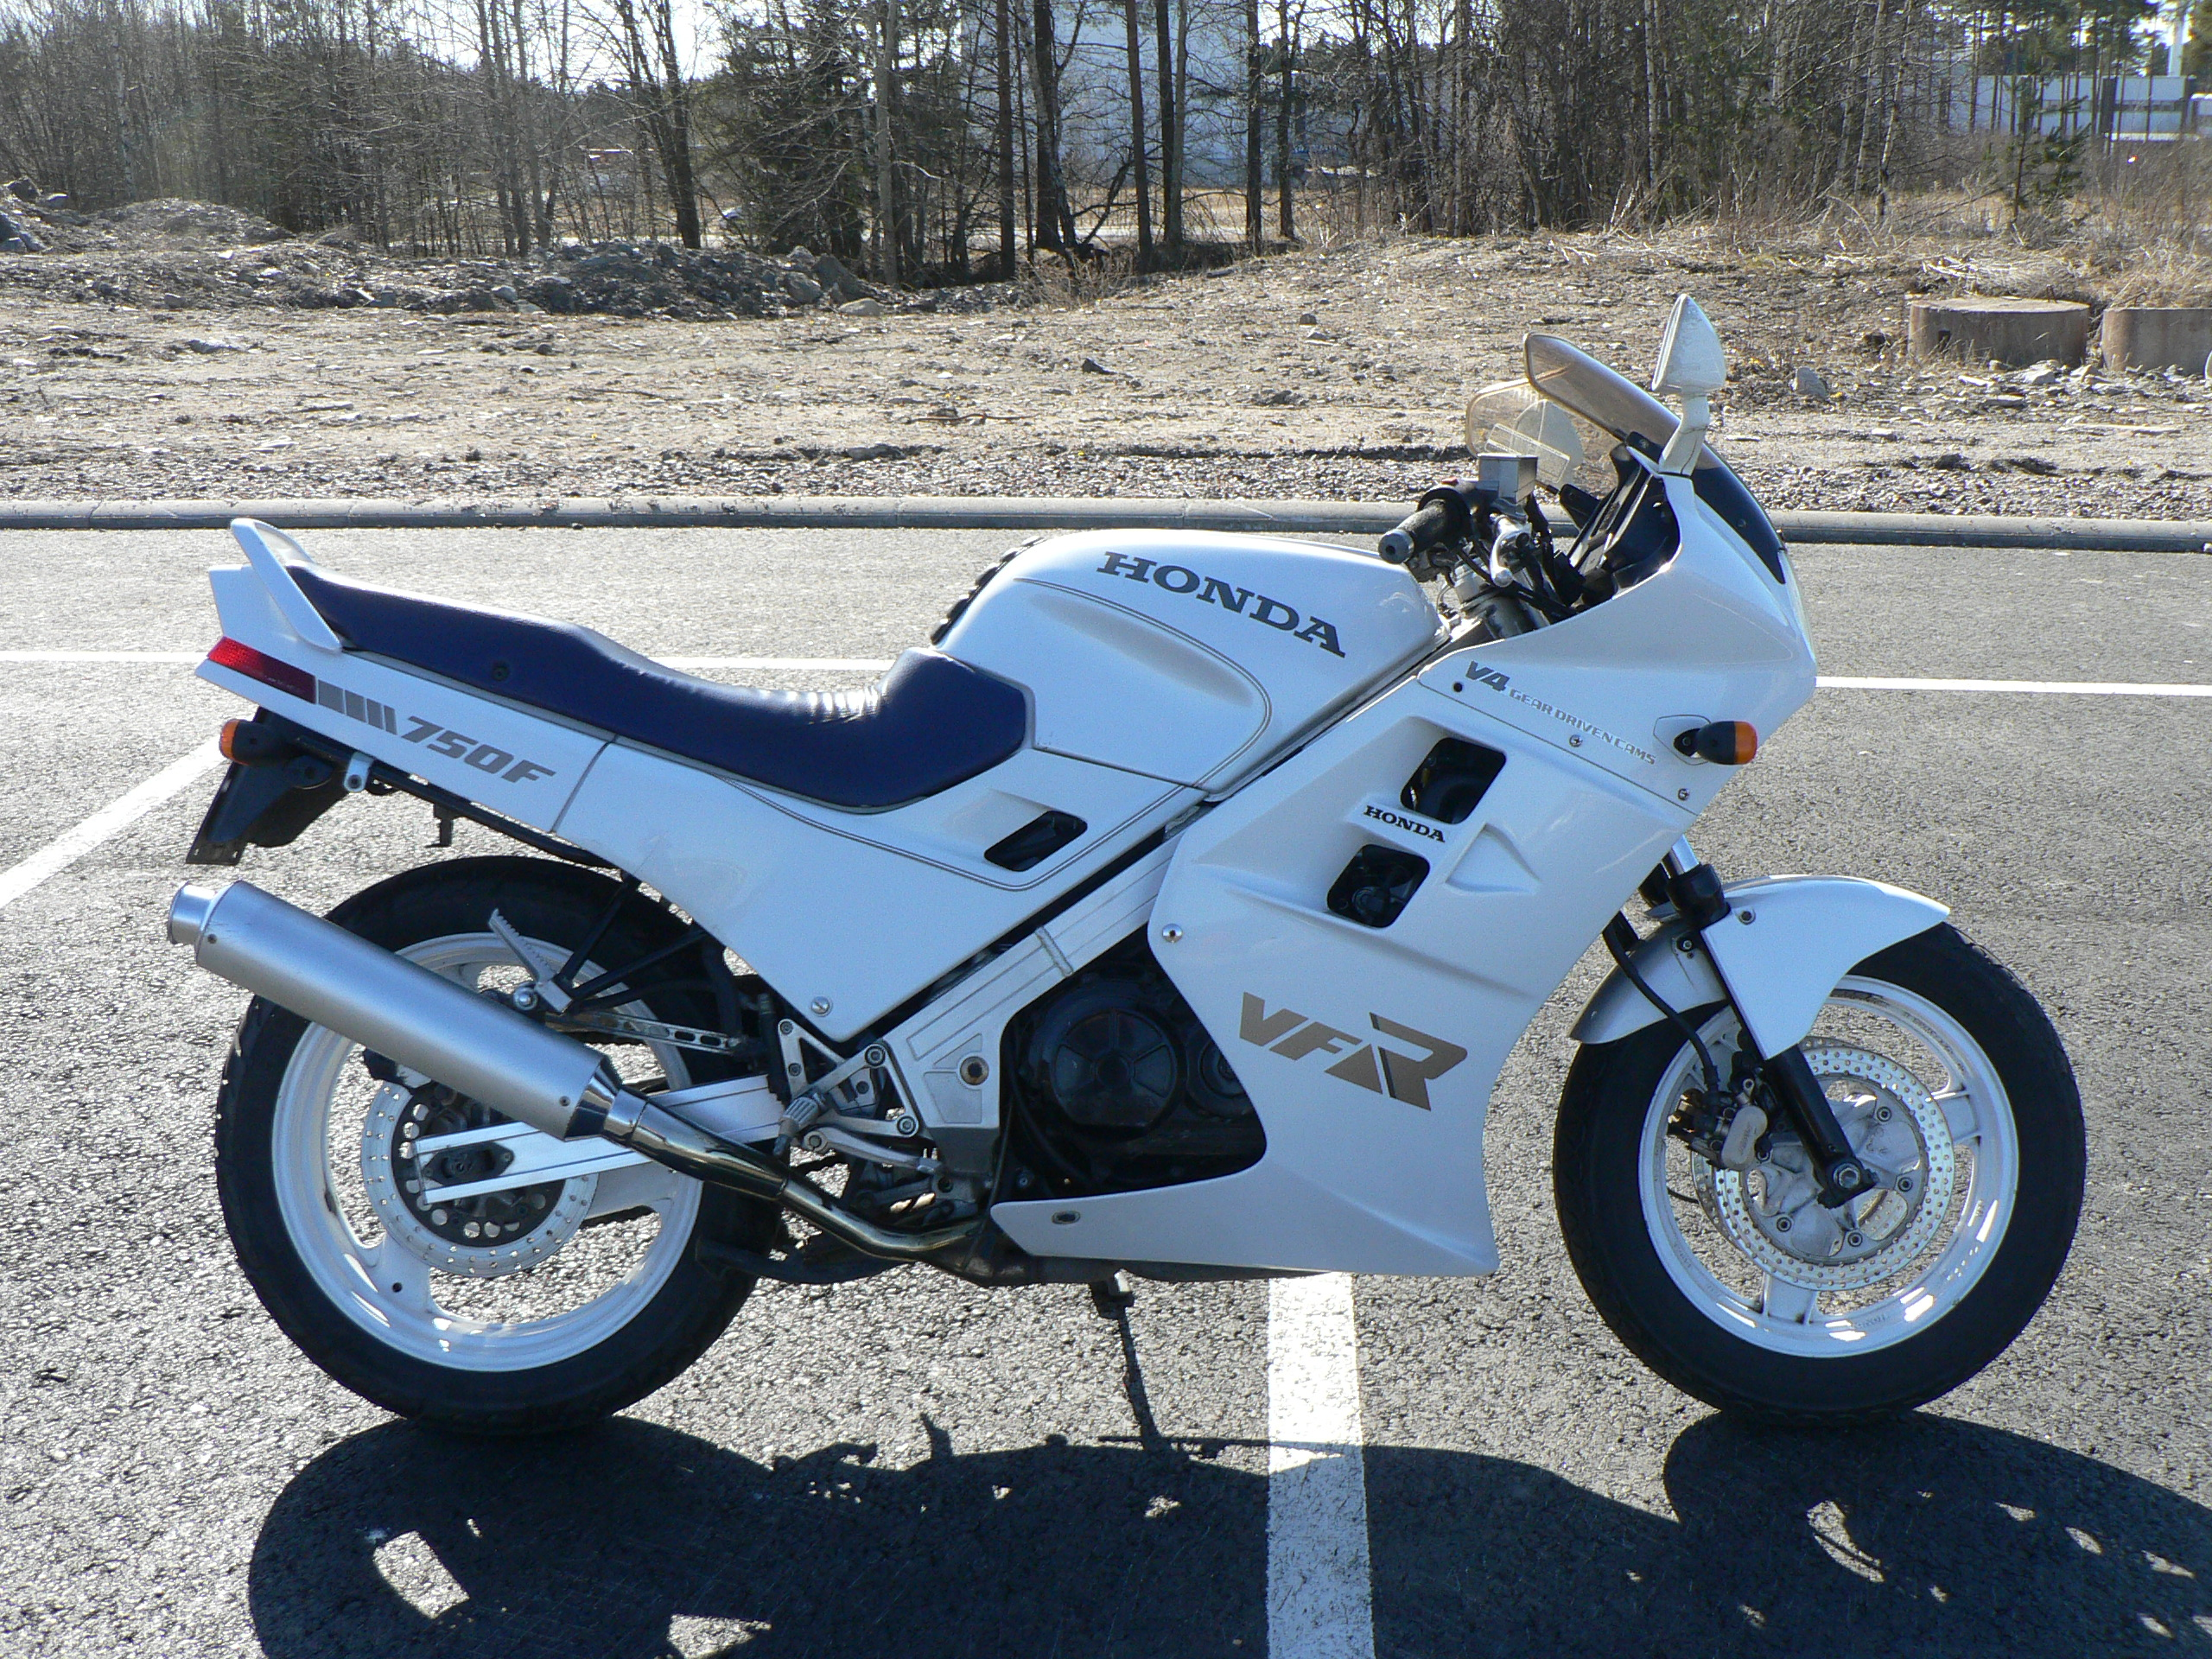 Honda vfr 400 nc24 pics specs and list of seriess by year honda vfr 400 nc24 images 81060 cheapraybanclubmaster Image collections